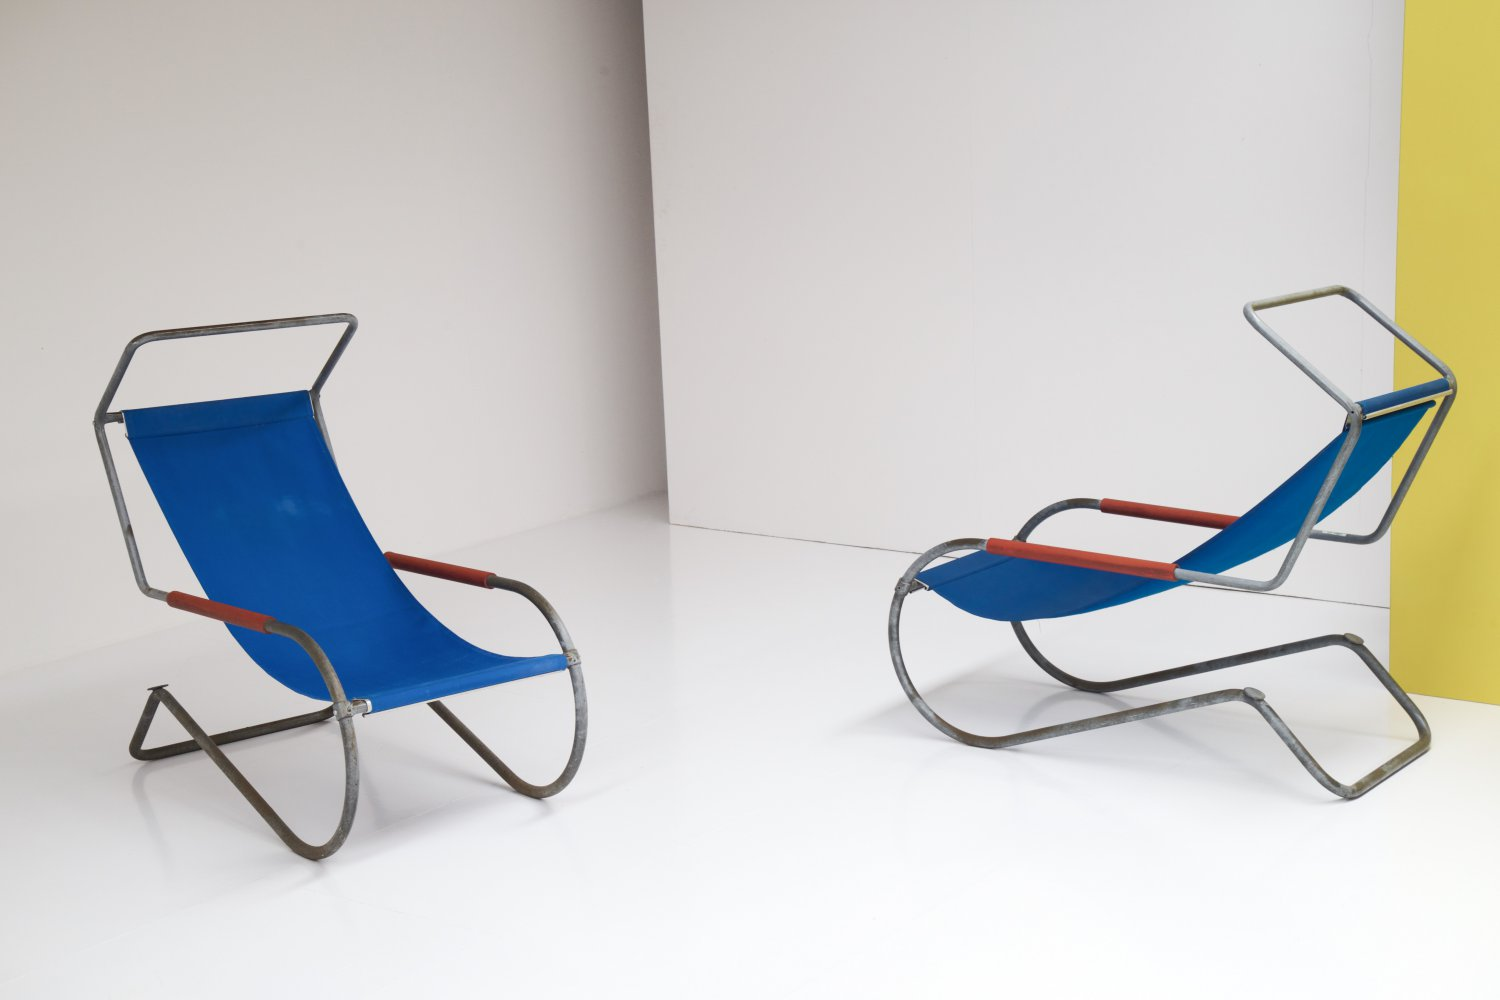 Lido lounge chairs by Fratelli Giudici